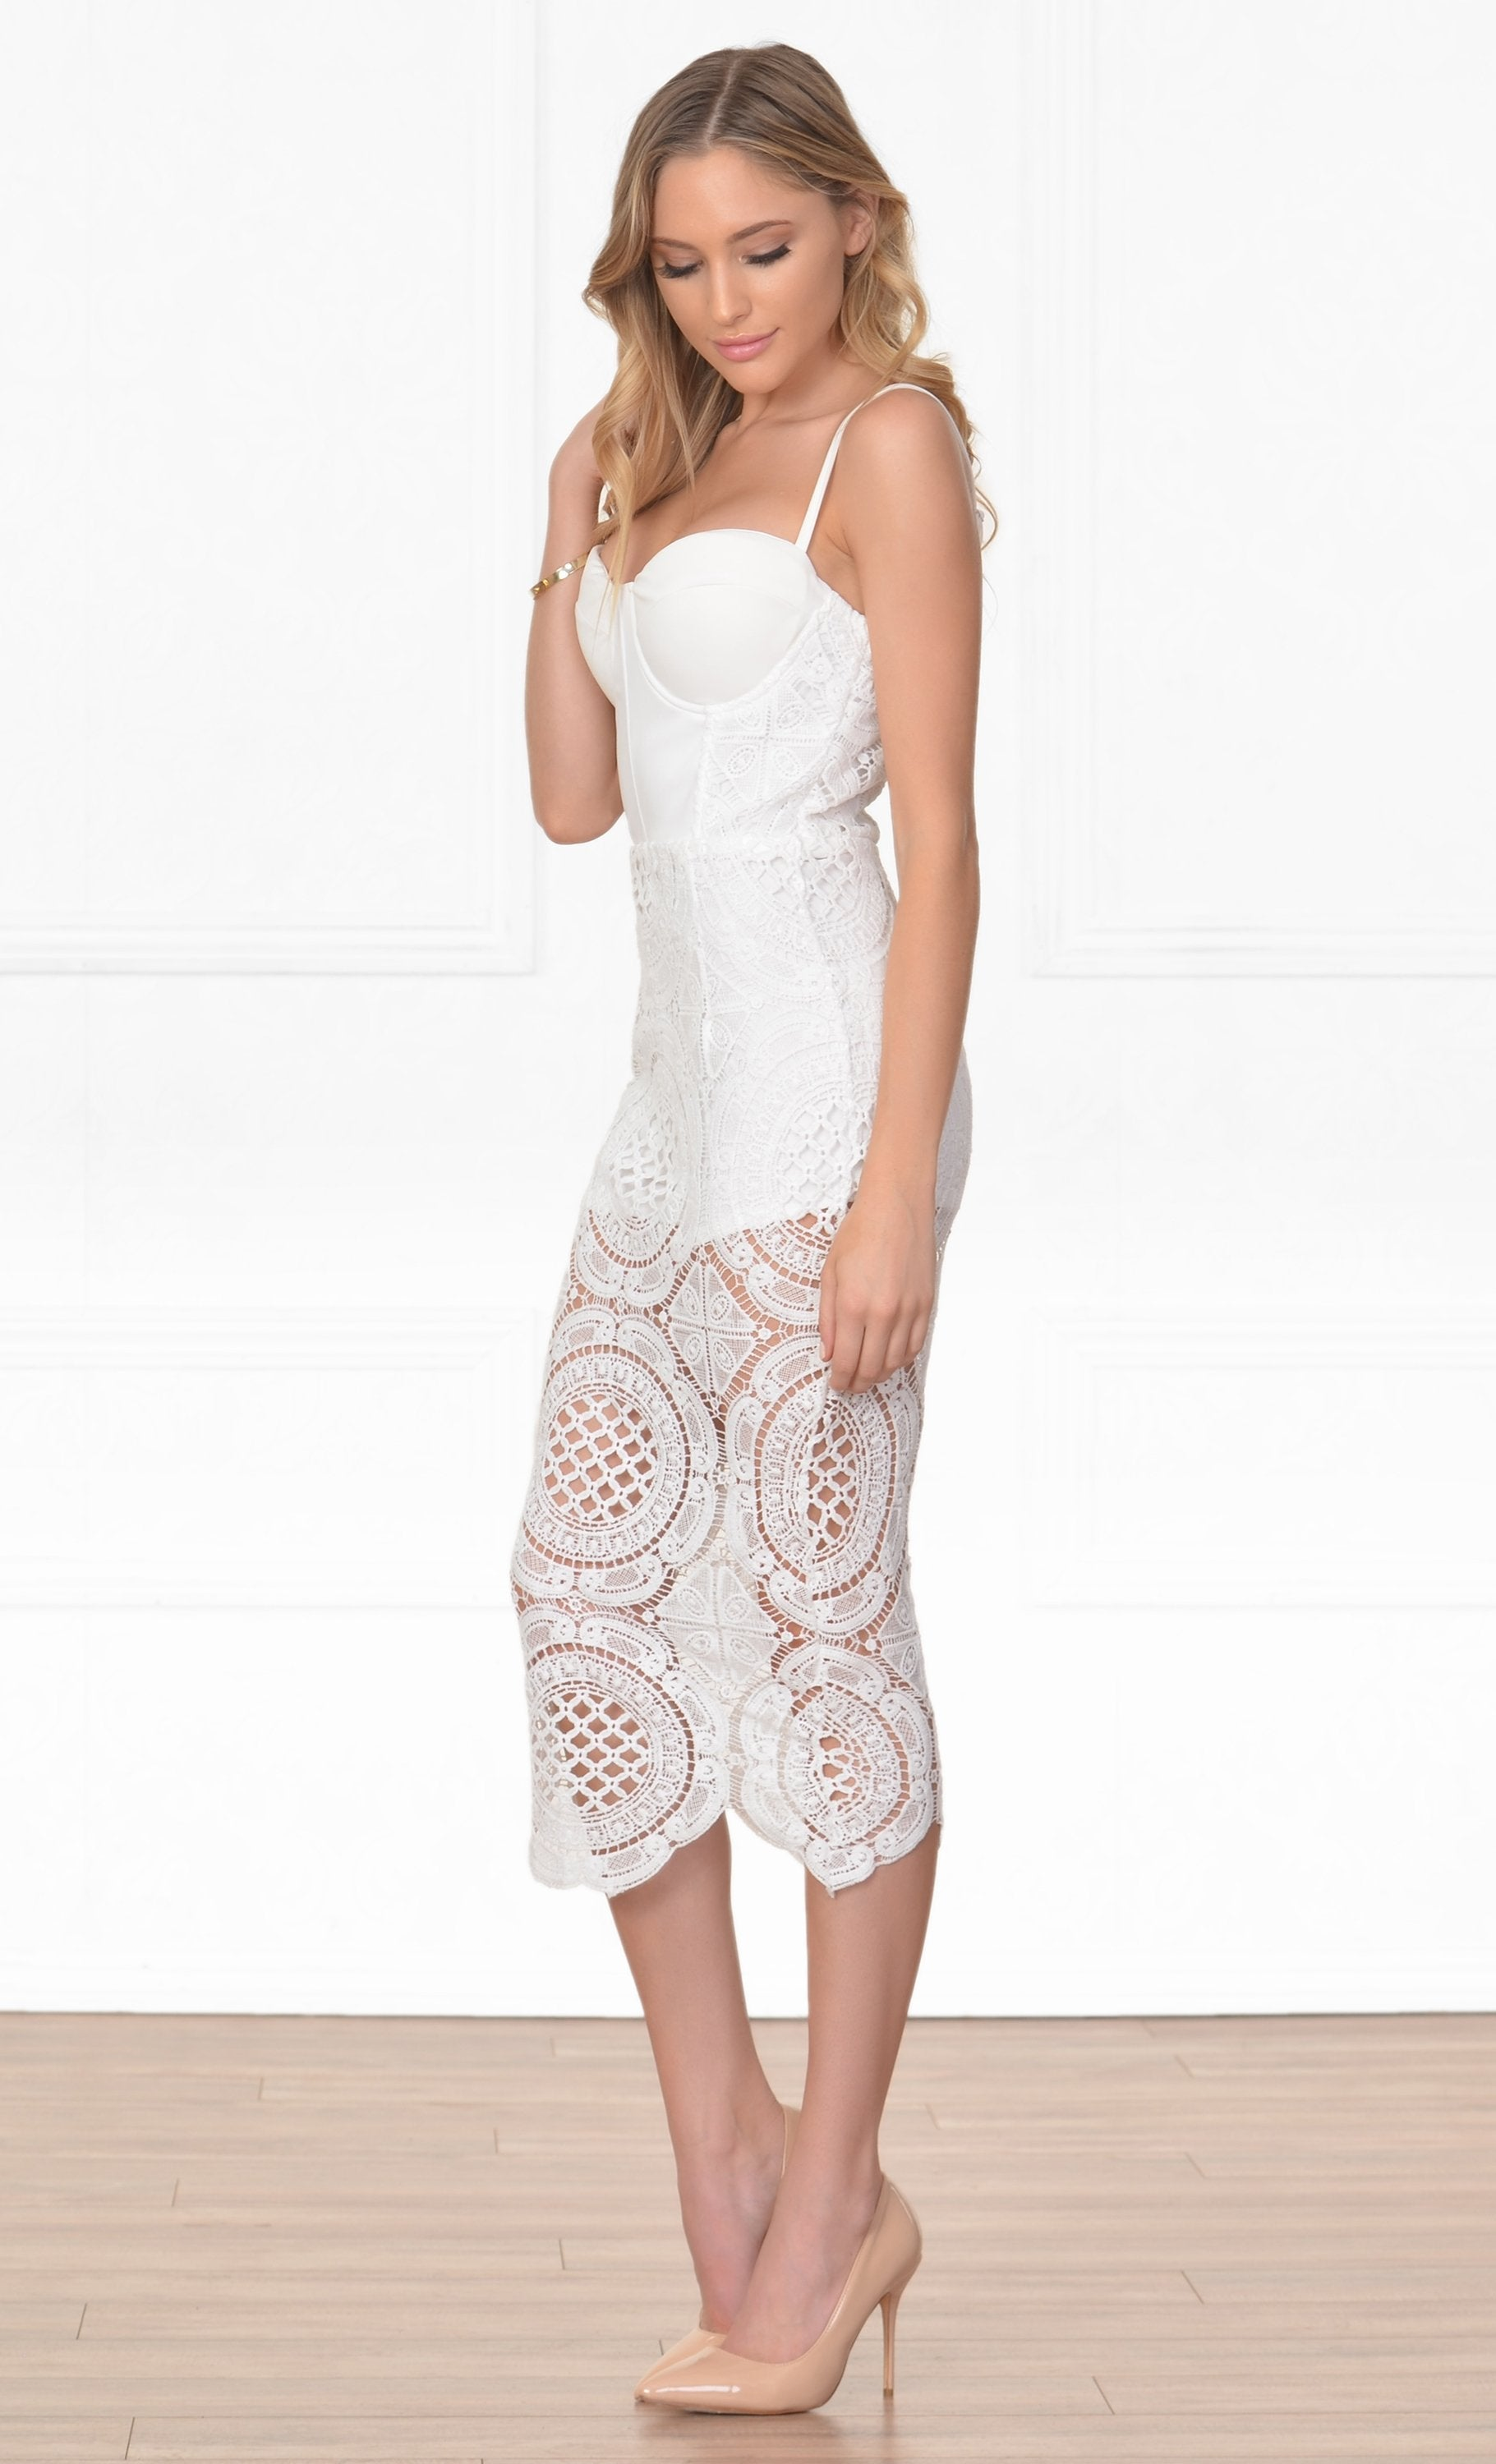 Indie XO Anything Goes White Lace Spaghetti Strap Sweetheart Neck Bustier Bodycon Midi Dress - Sold Out